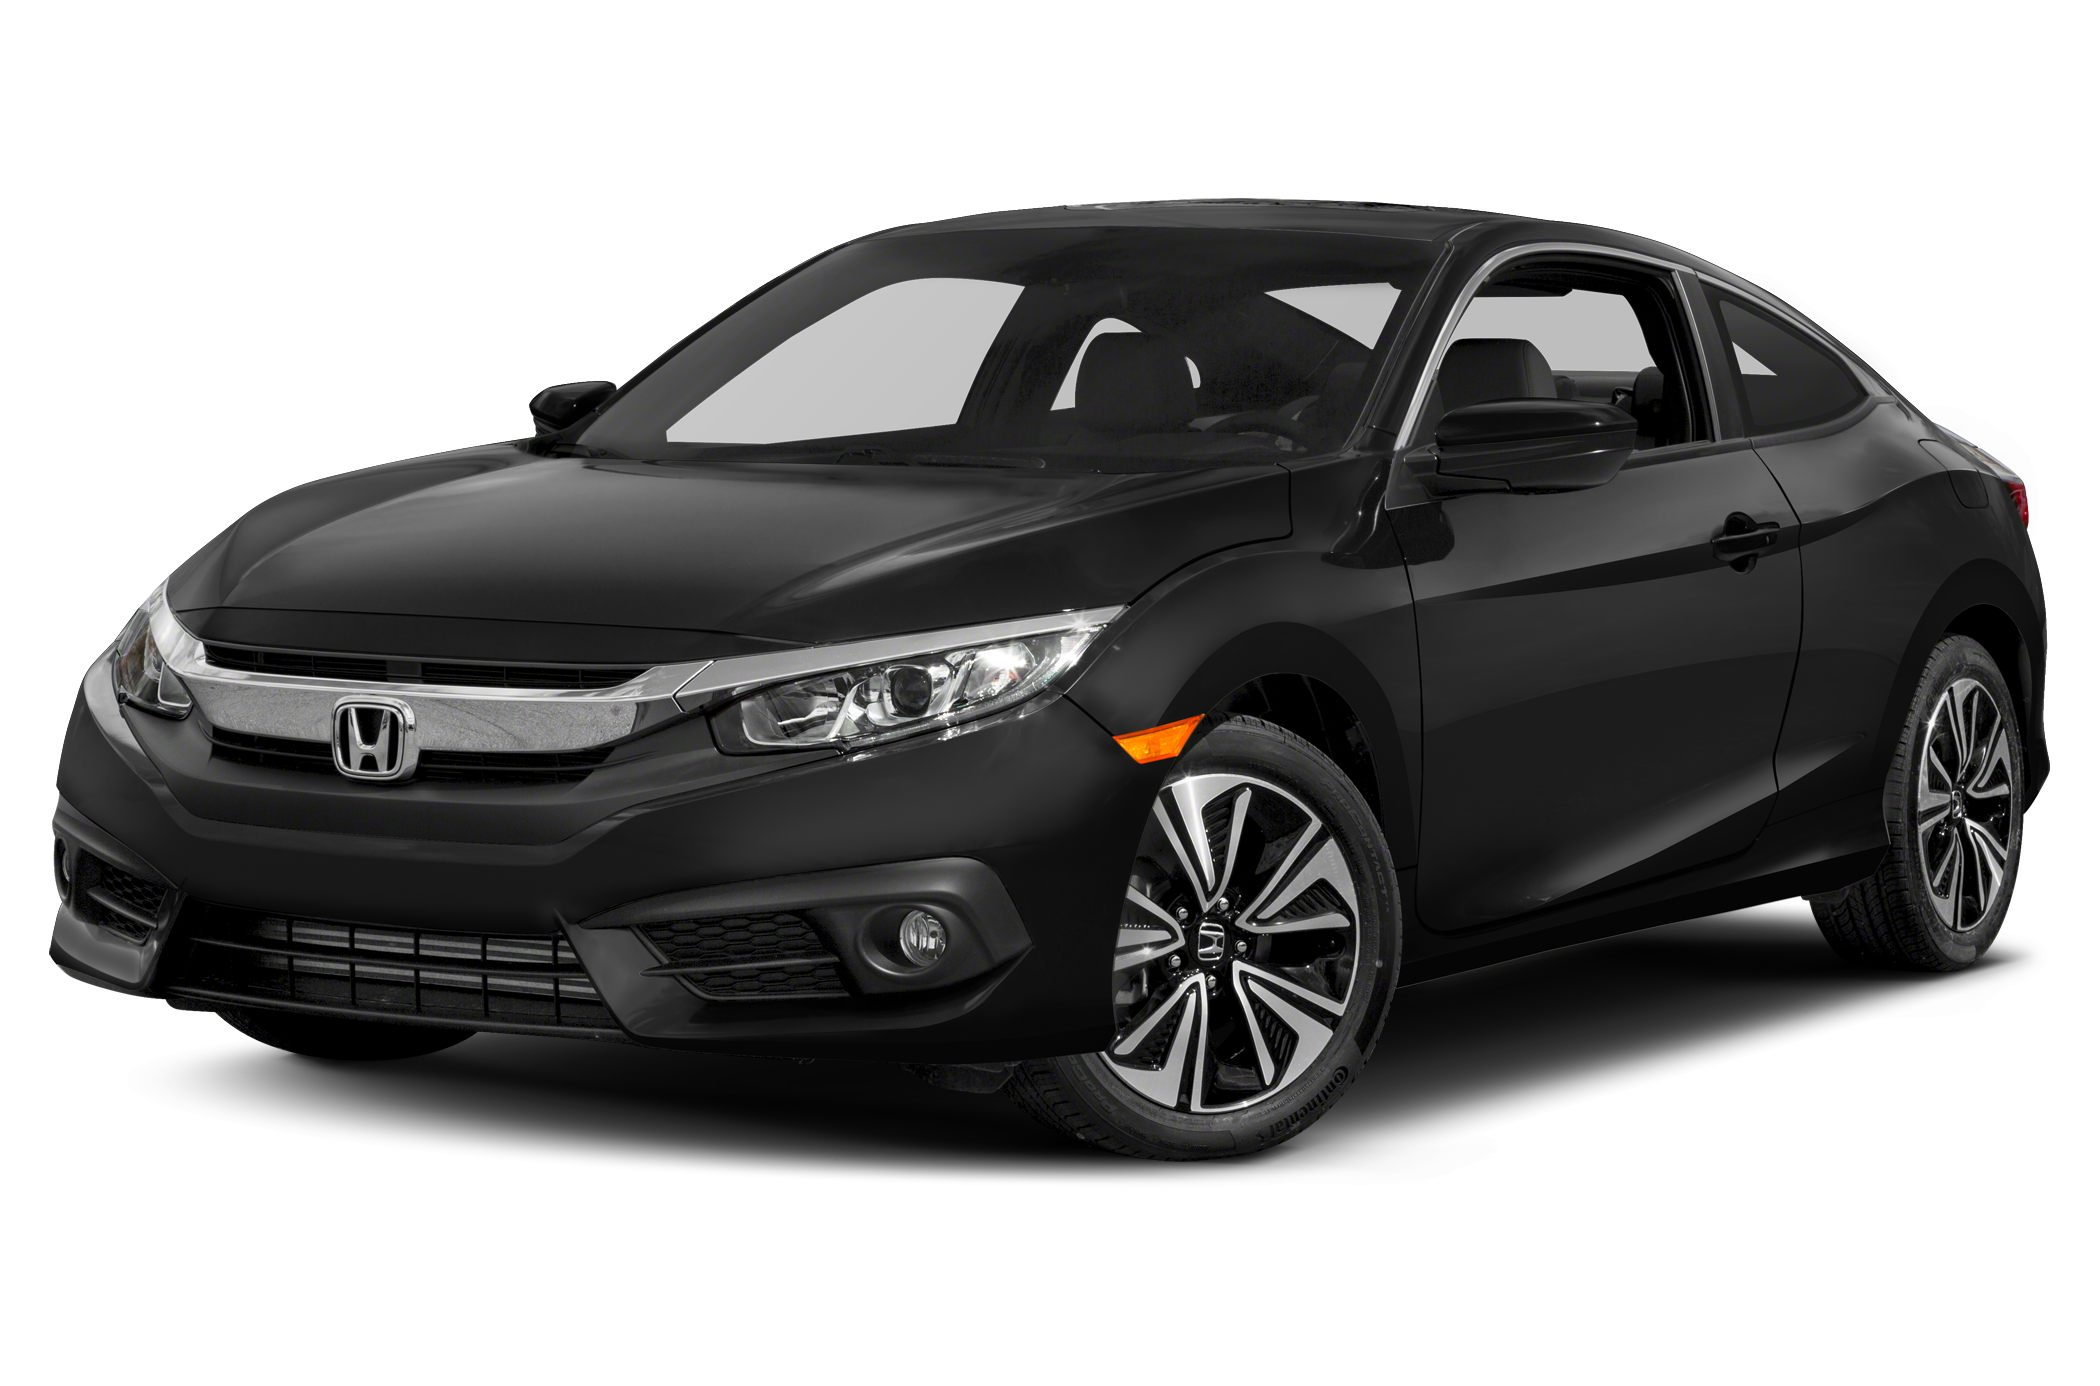 2016 Honda Civic EX-T Look Look Look You Win Buy a new Honda from Diamond Valley Honda in Heme